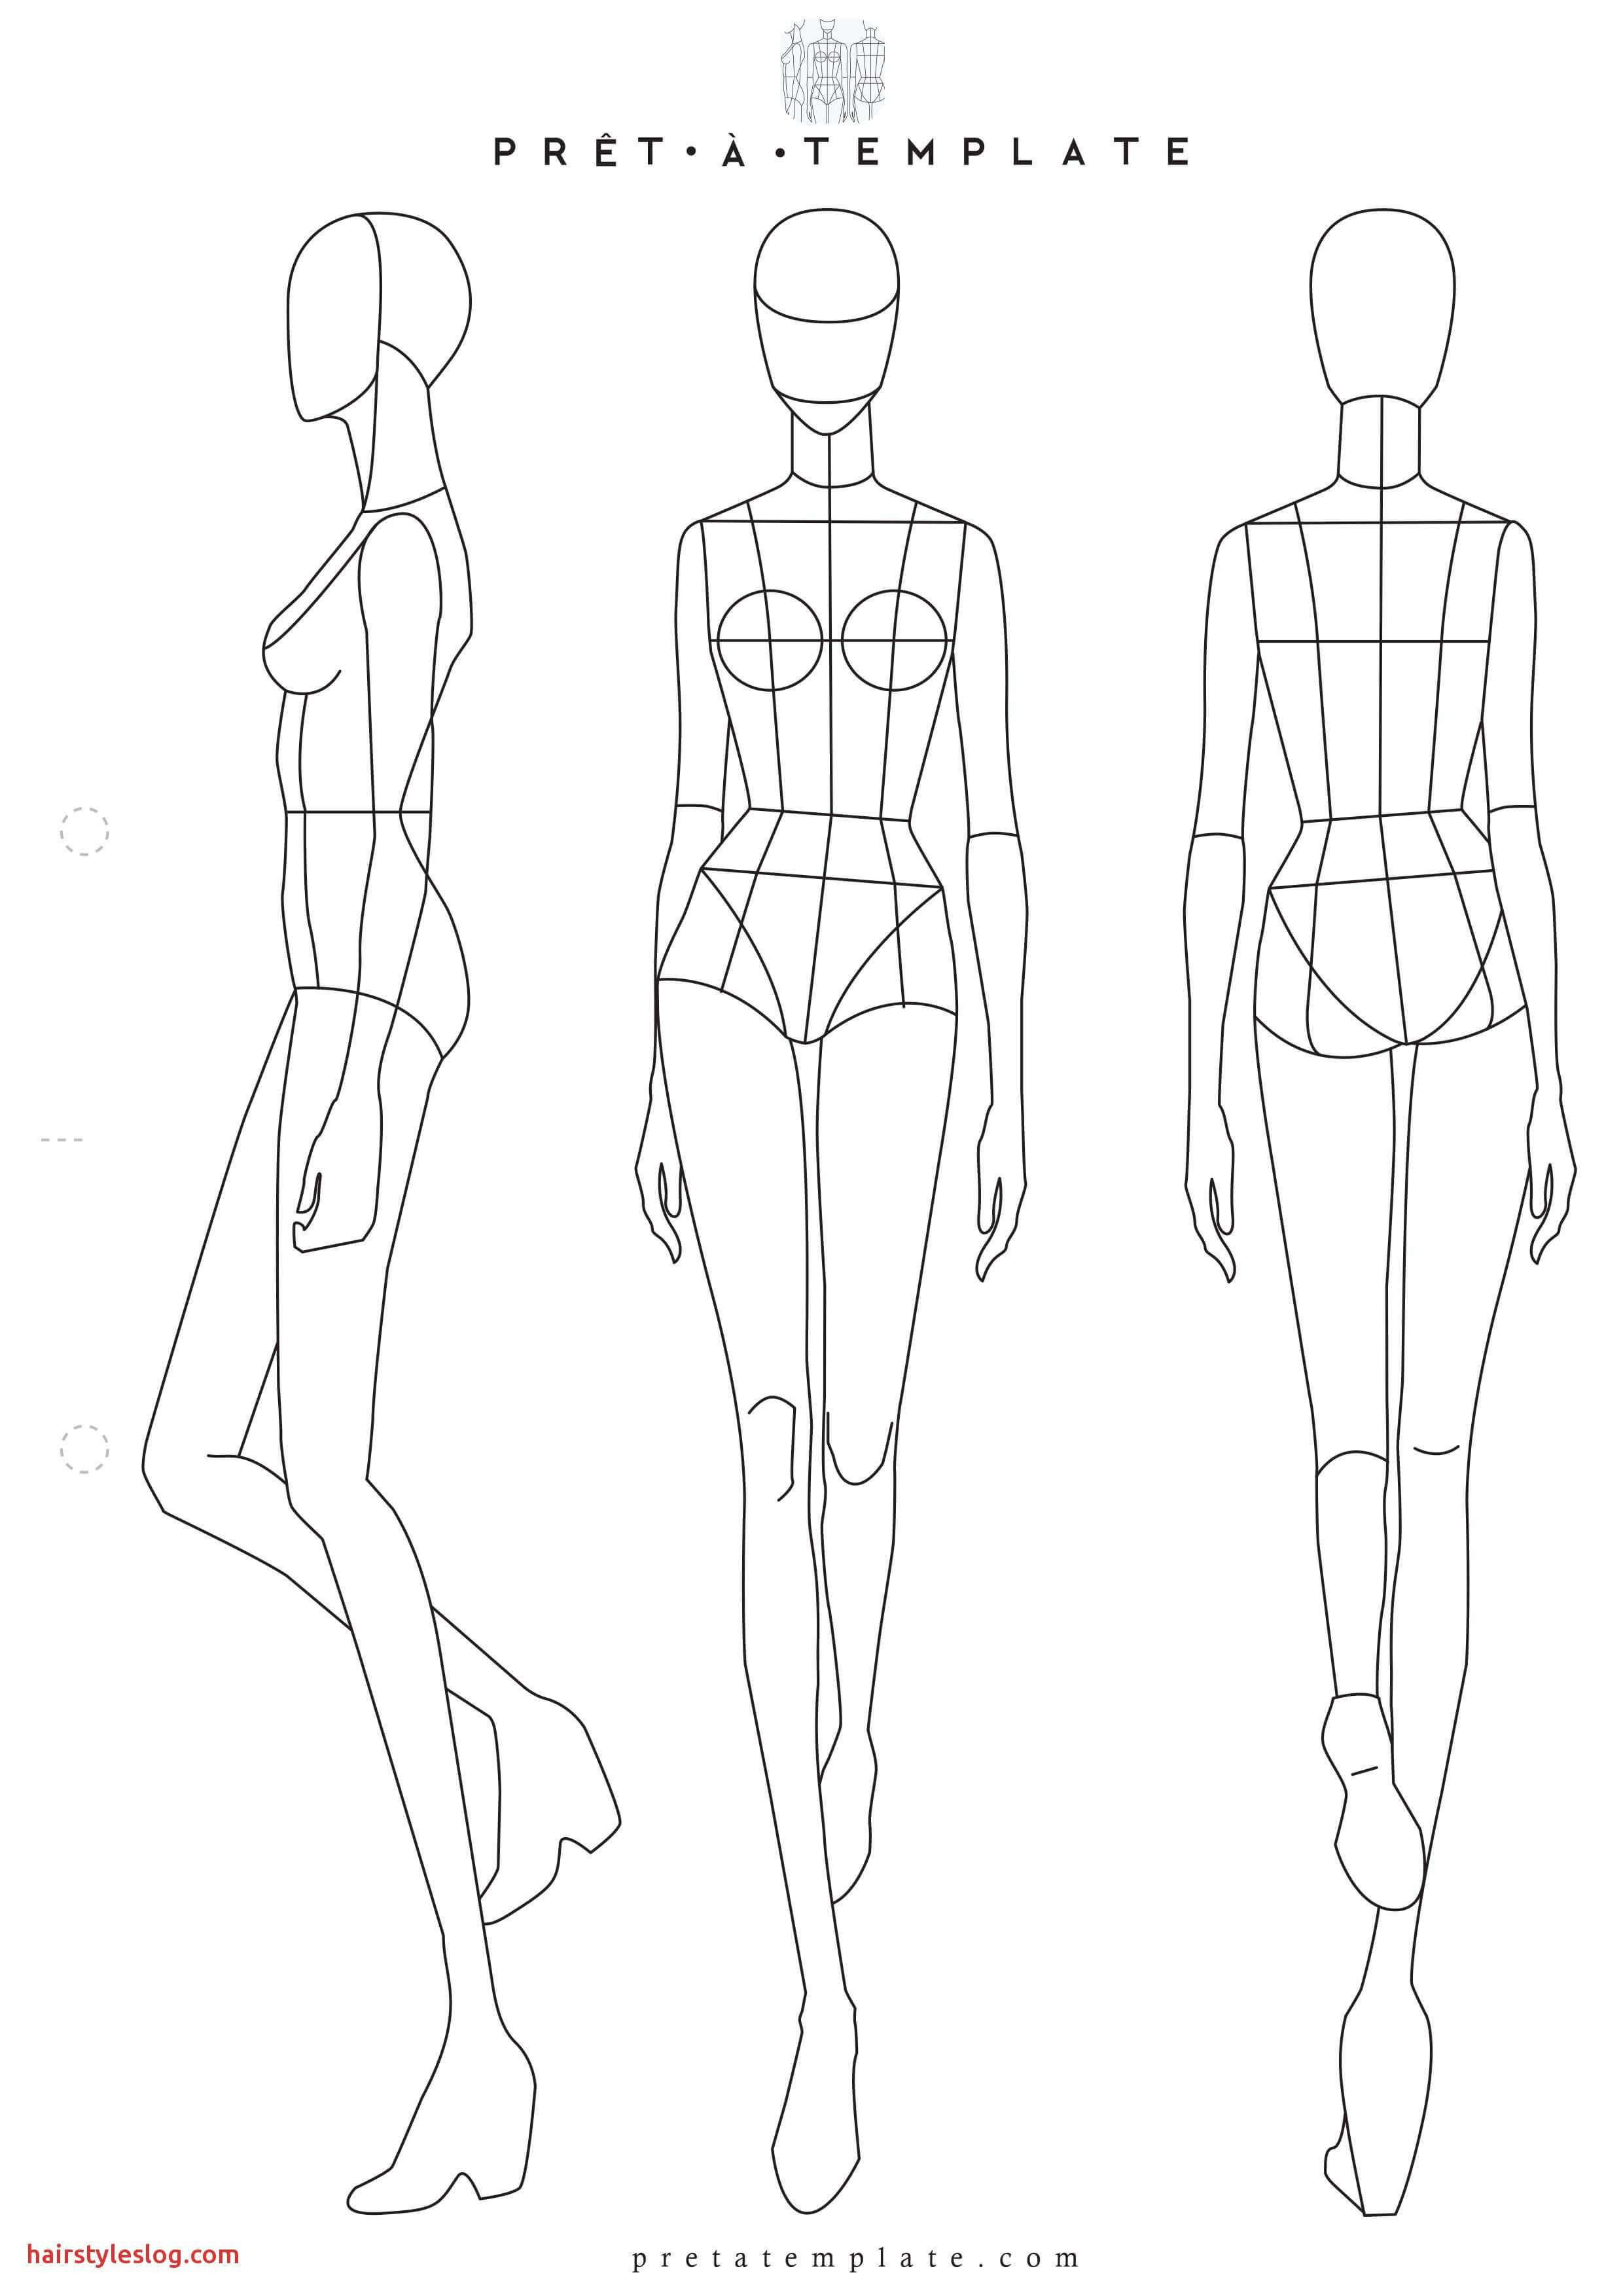 Model Sketch Template At Paintingvalley | Explore Pertaining To Blank Model Sketch Template